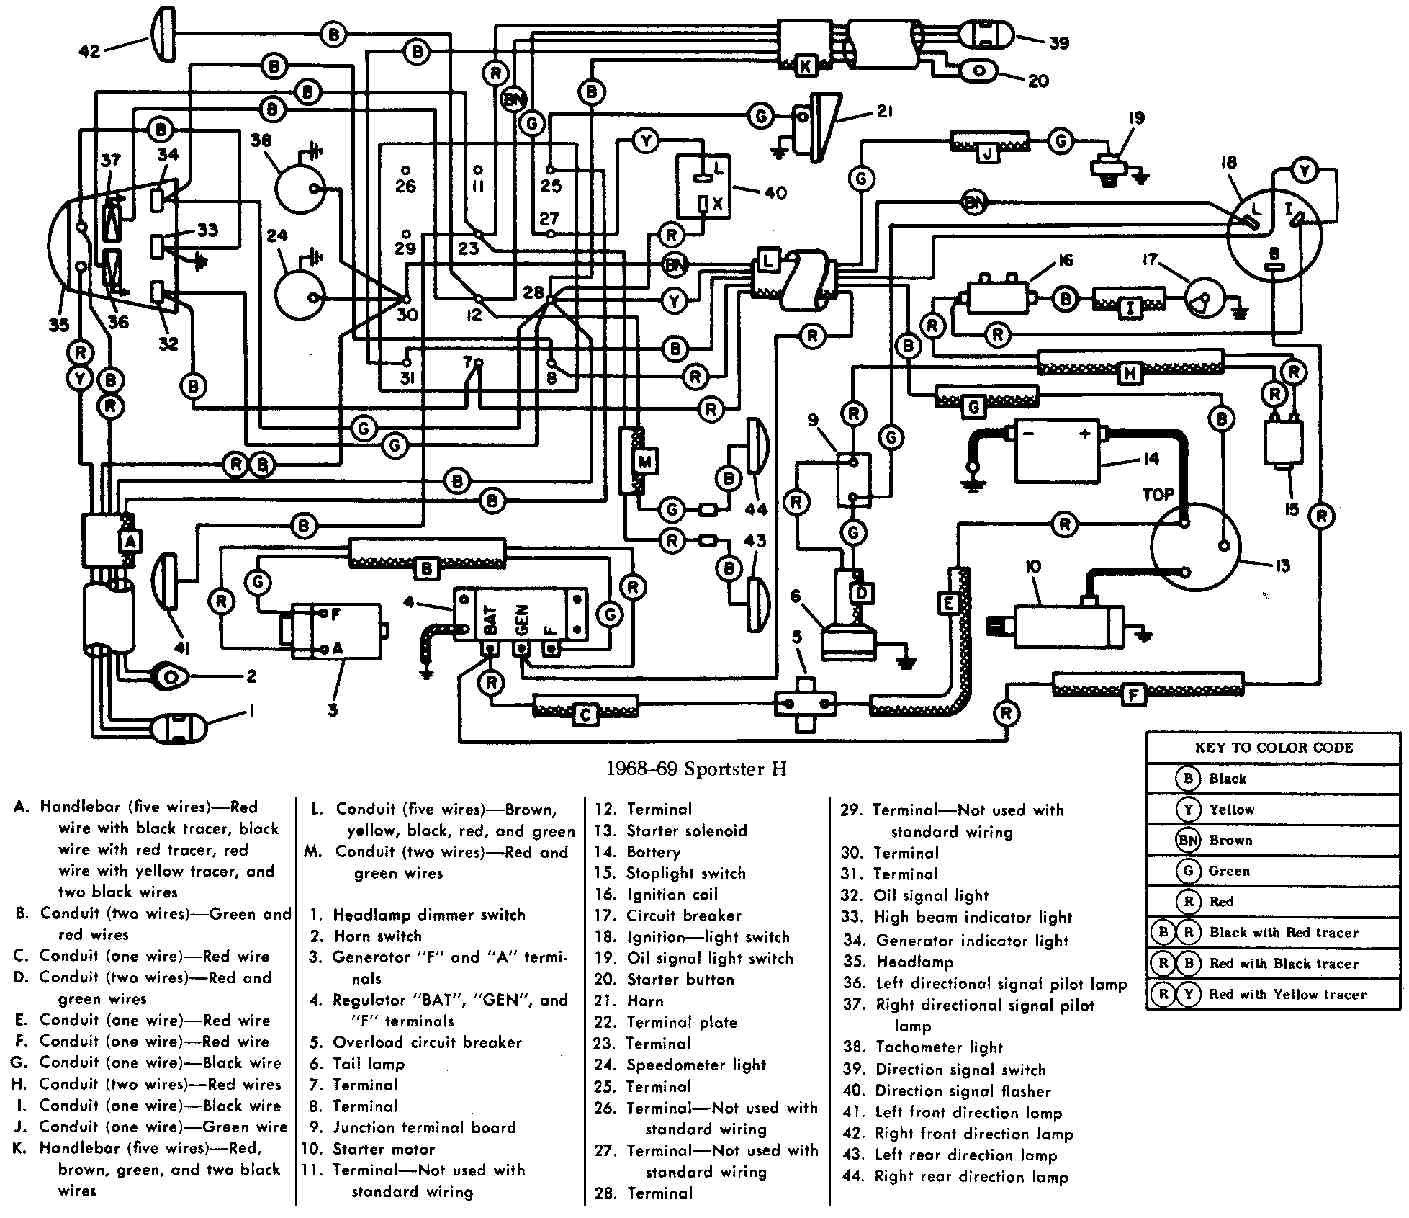 Ural 750 Wiring Diagram - Auto Electrical Wiring Diagram Ural Wiring Diagram on ural engine diagram, ural parts, ural ignition diagram,